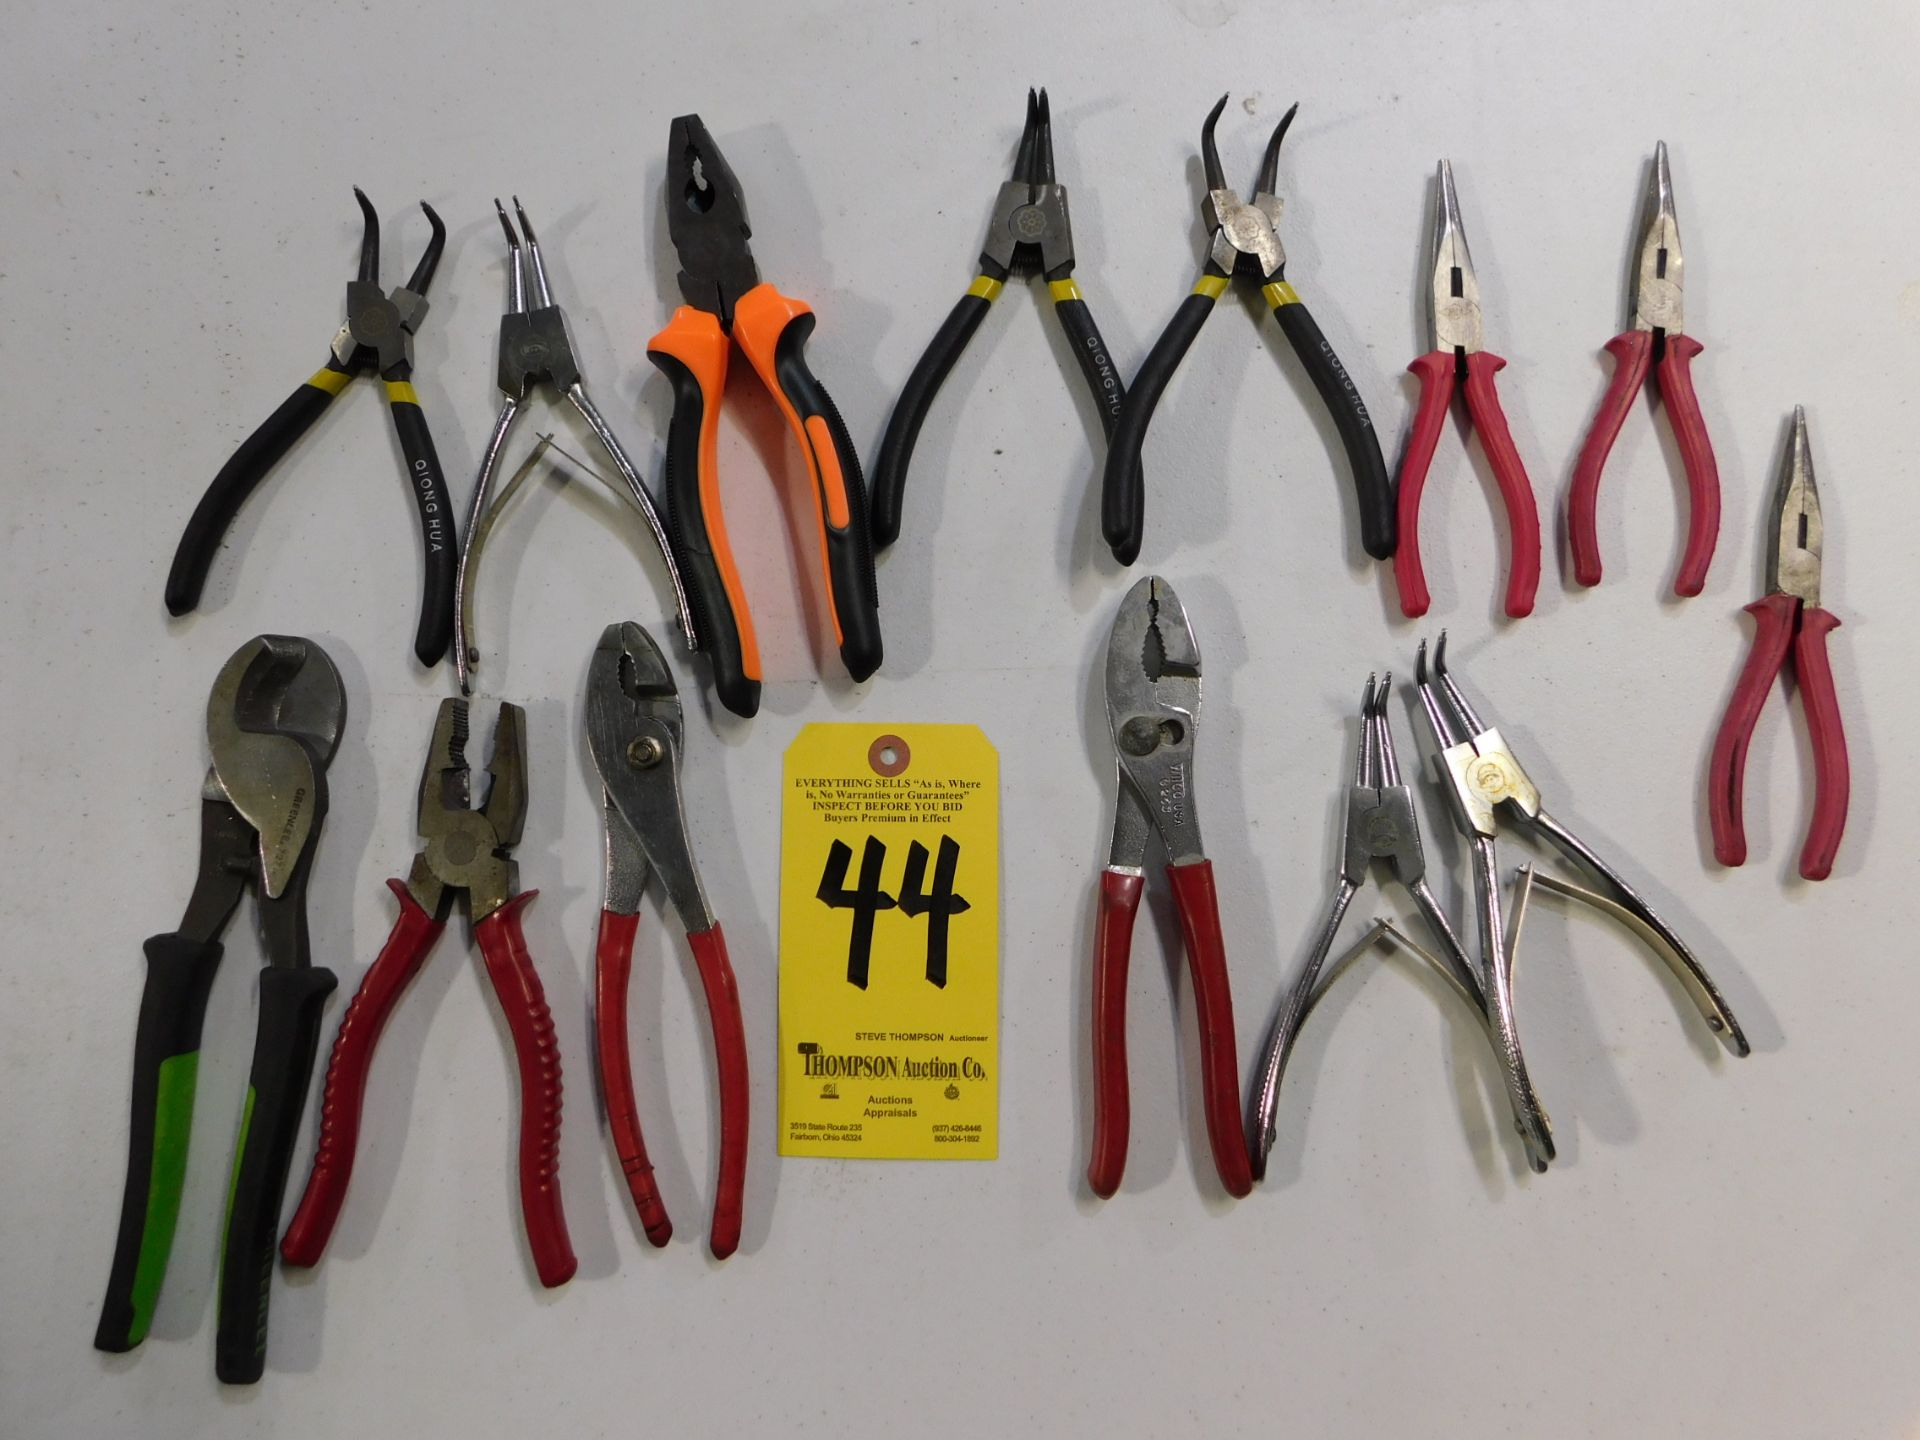 Lot 44 - Miscellaneous Pliers, Lot Location 3204 Olympia Dr. A, Lafayette, IN 47909